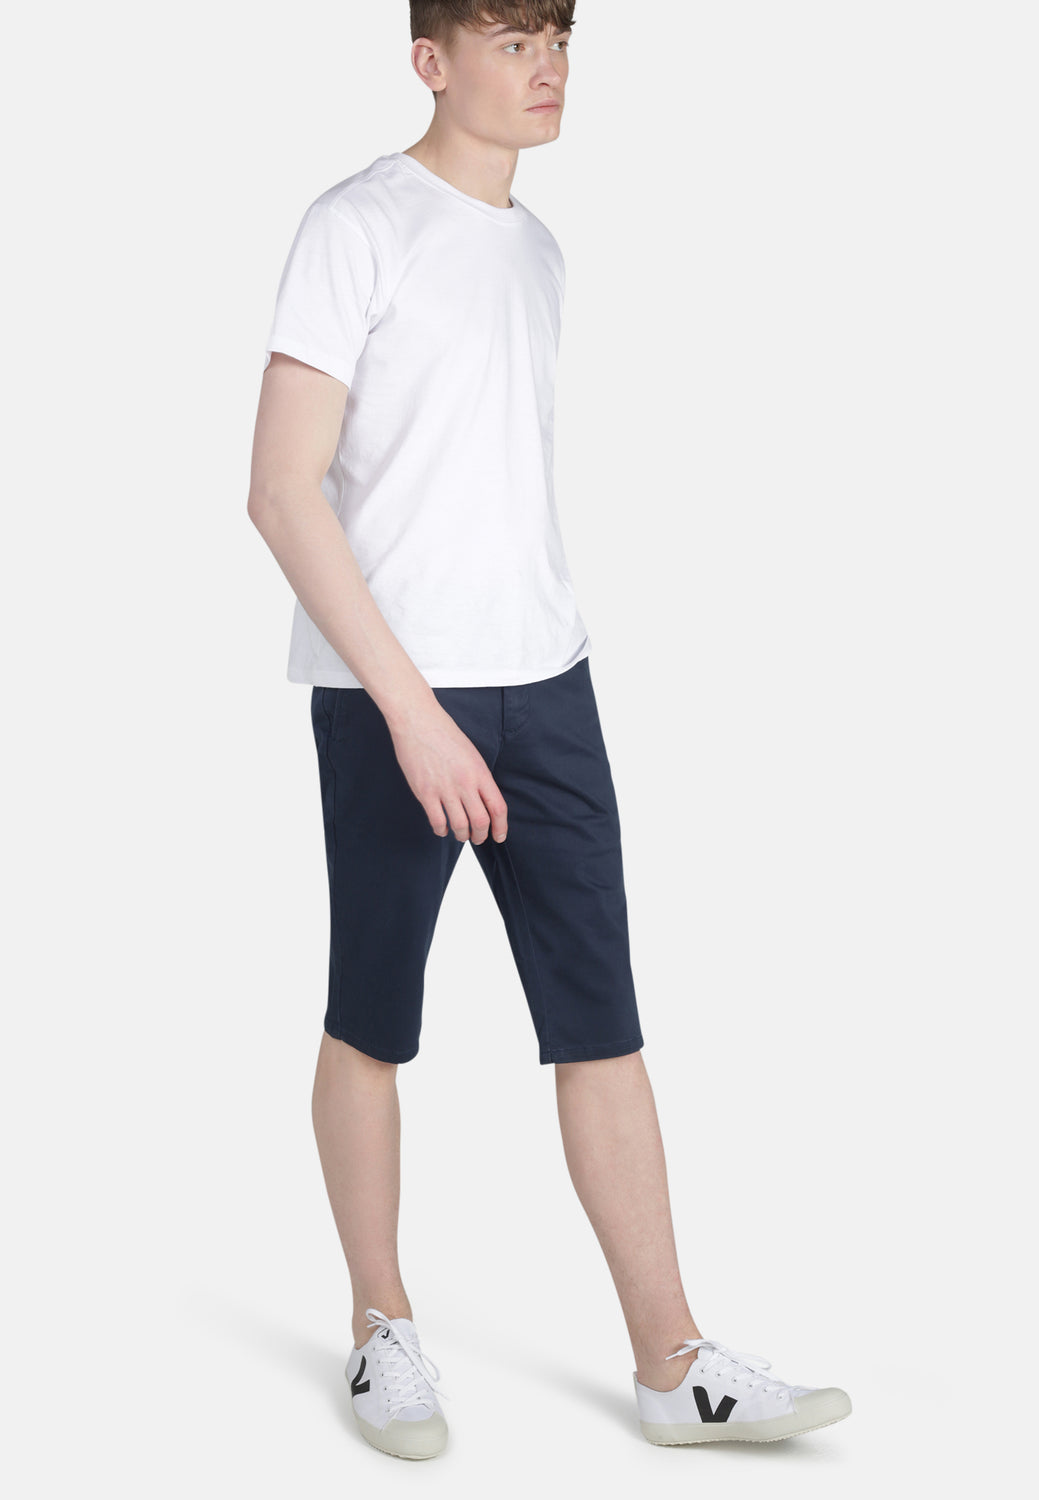 CHINO SHORTS // Organic Sateen Chino Short in Navy - Monkee Genes Organic Jeans Denim - Men's Shorts Monkee Genes Official  Monkee Genes Official